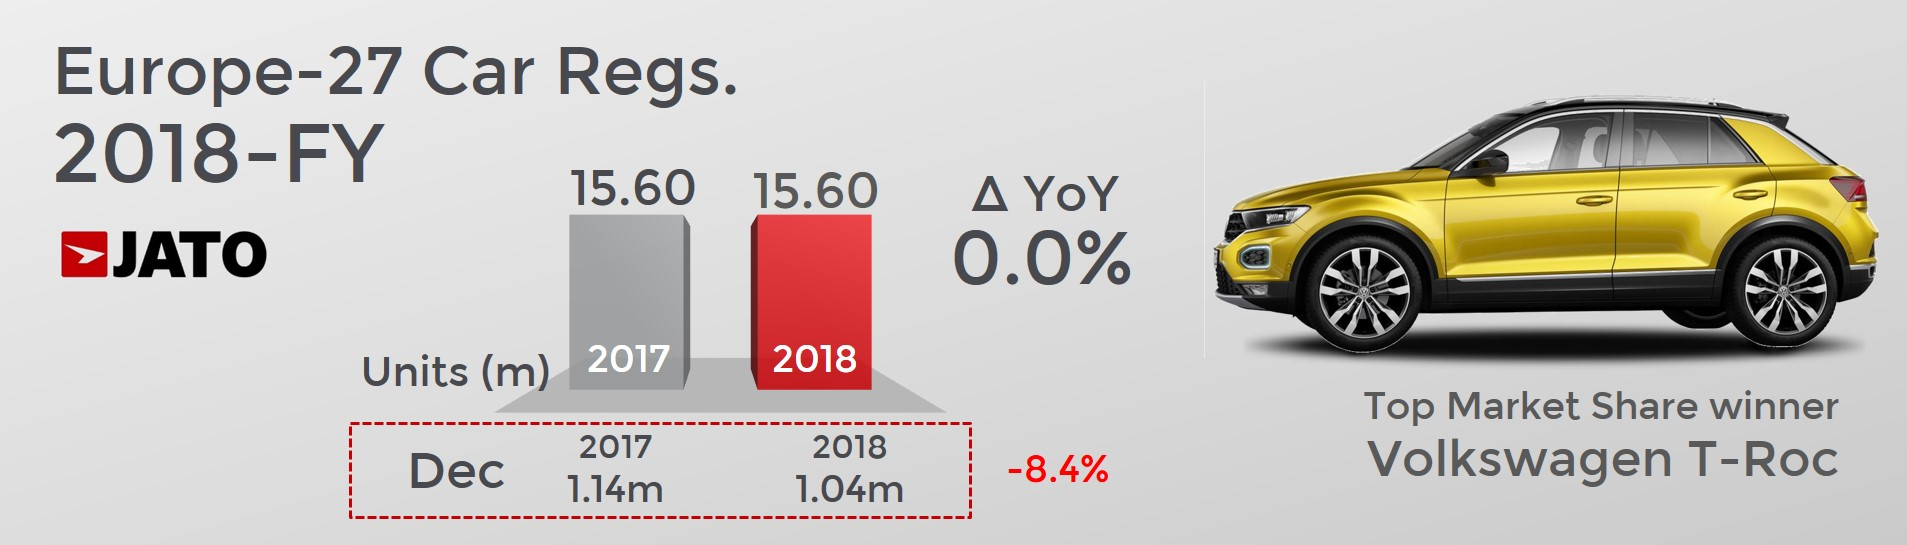 4a492df8b4 Diesel vehicles posted their lowest market share since 2001